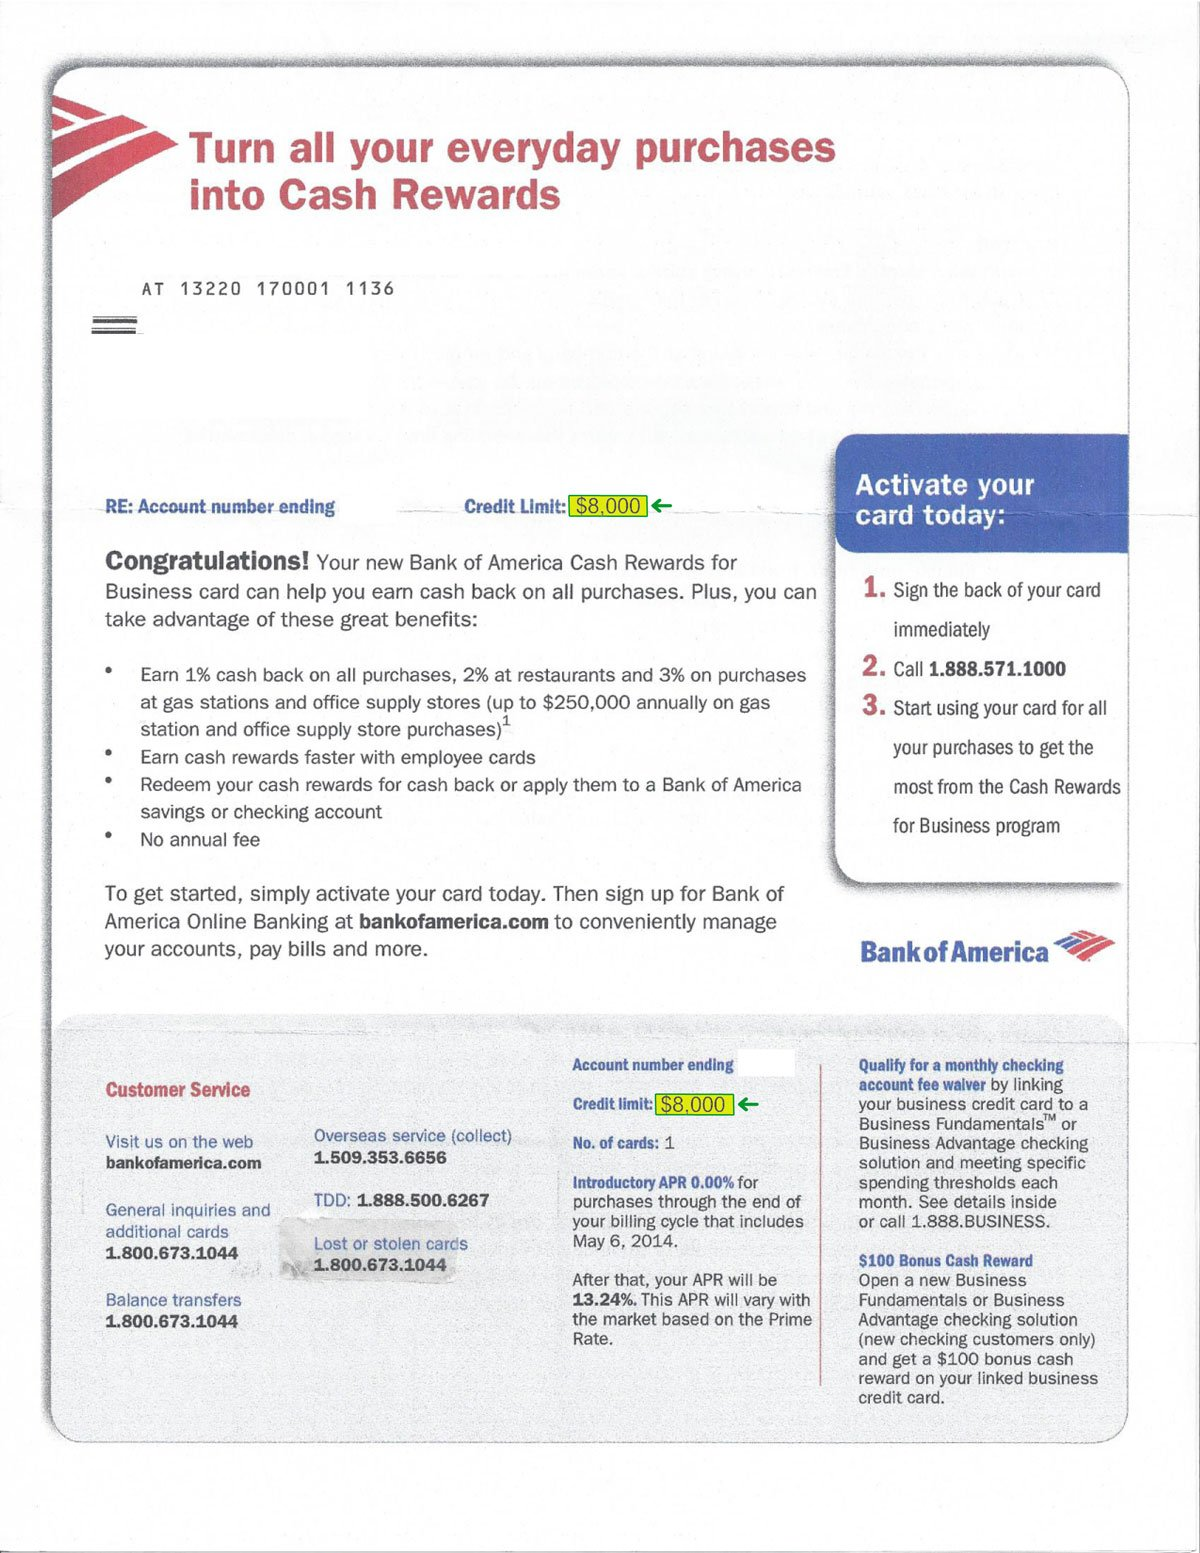 Double Gs Bank of America approval ltr Highlight - Legit